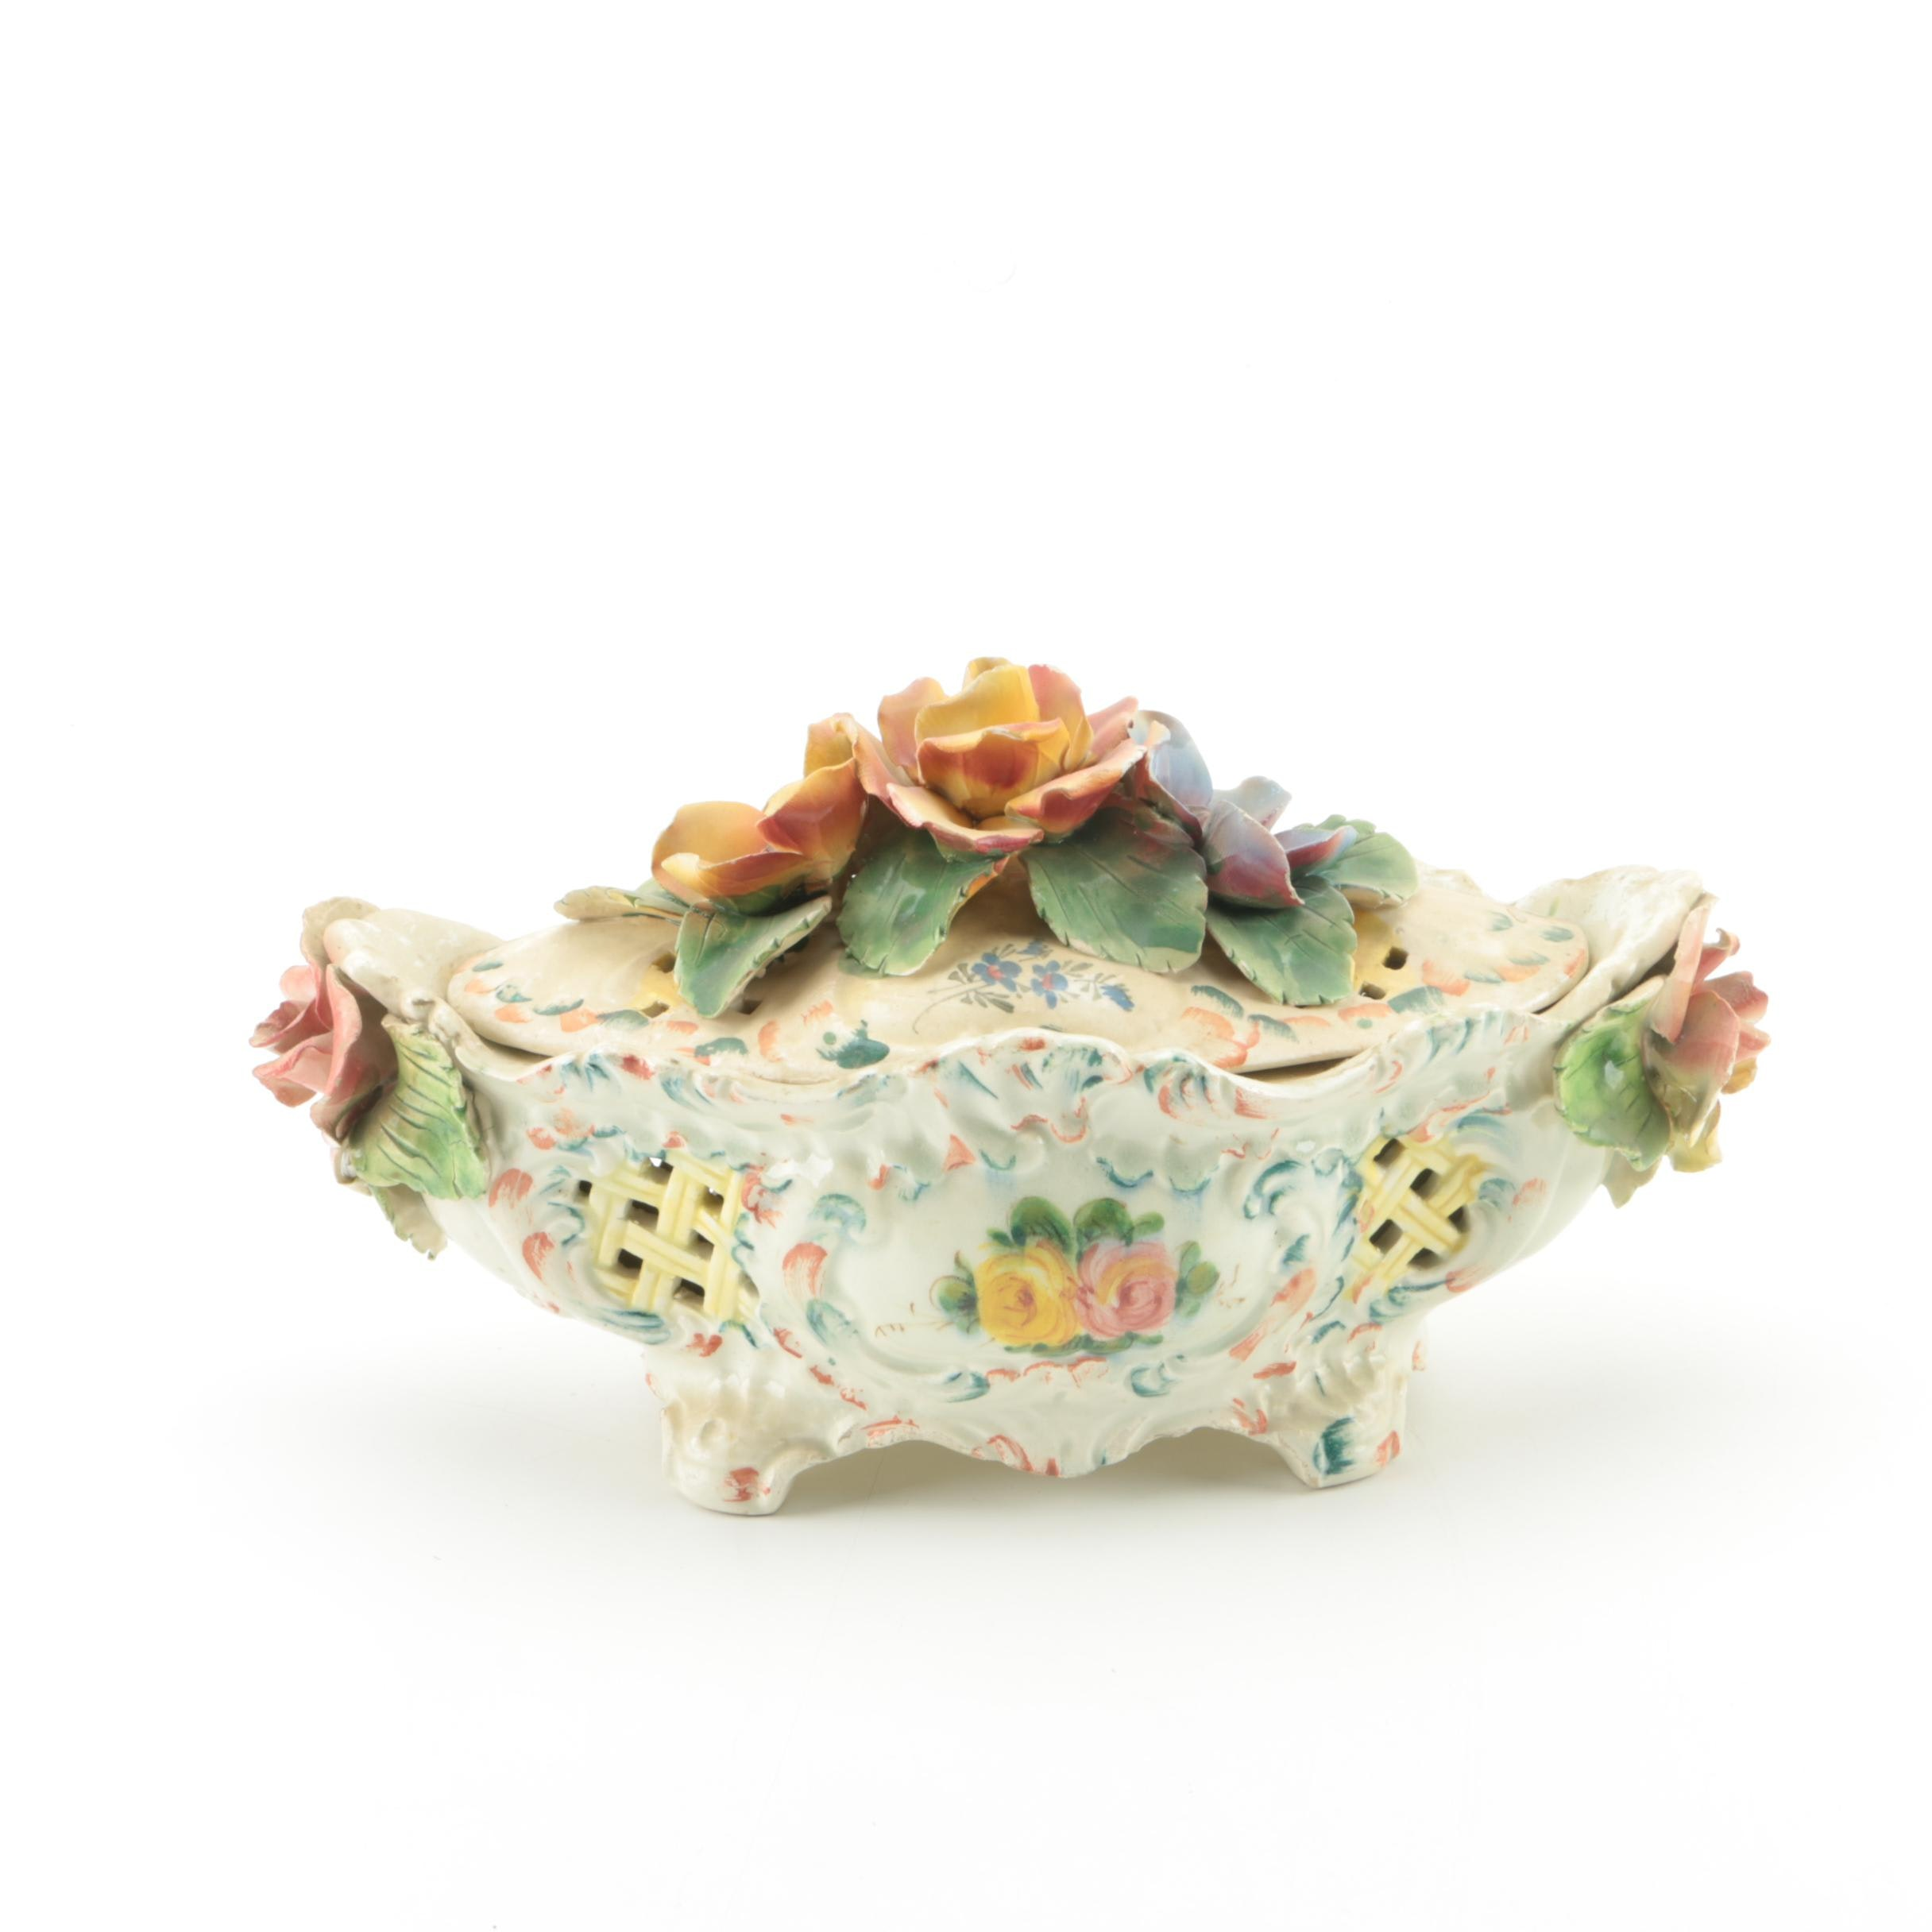 Italian Hand Painted Ceramic Bowl with Roses